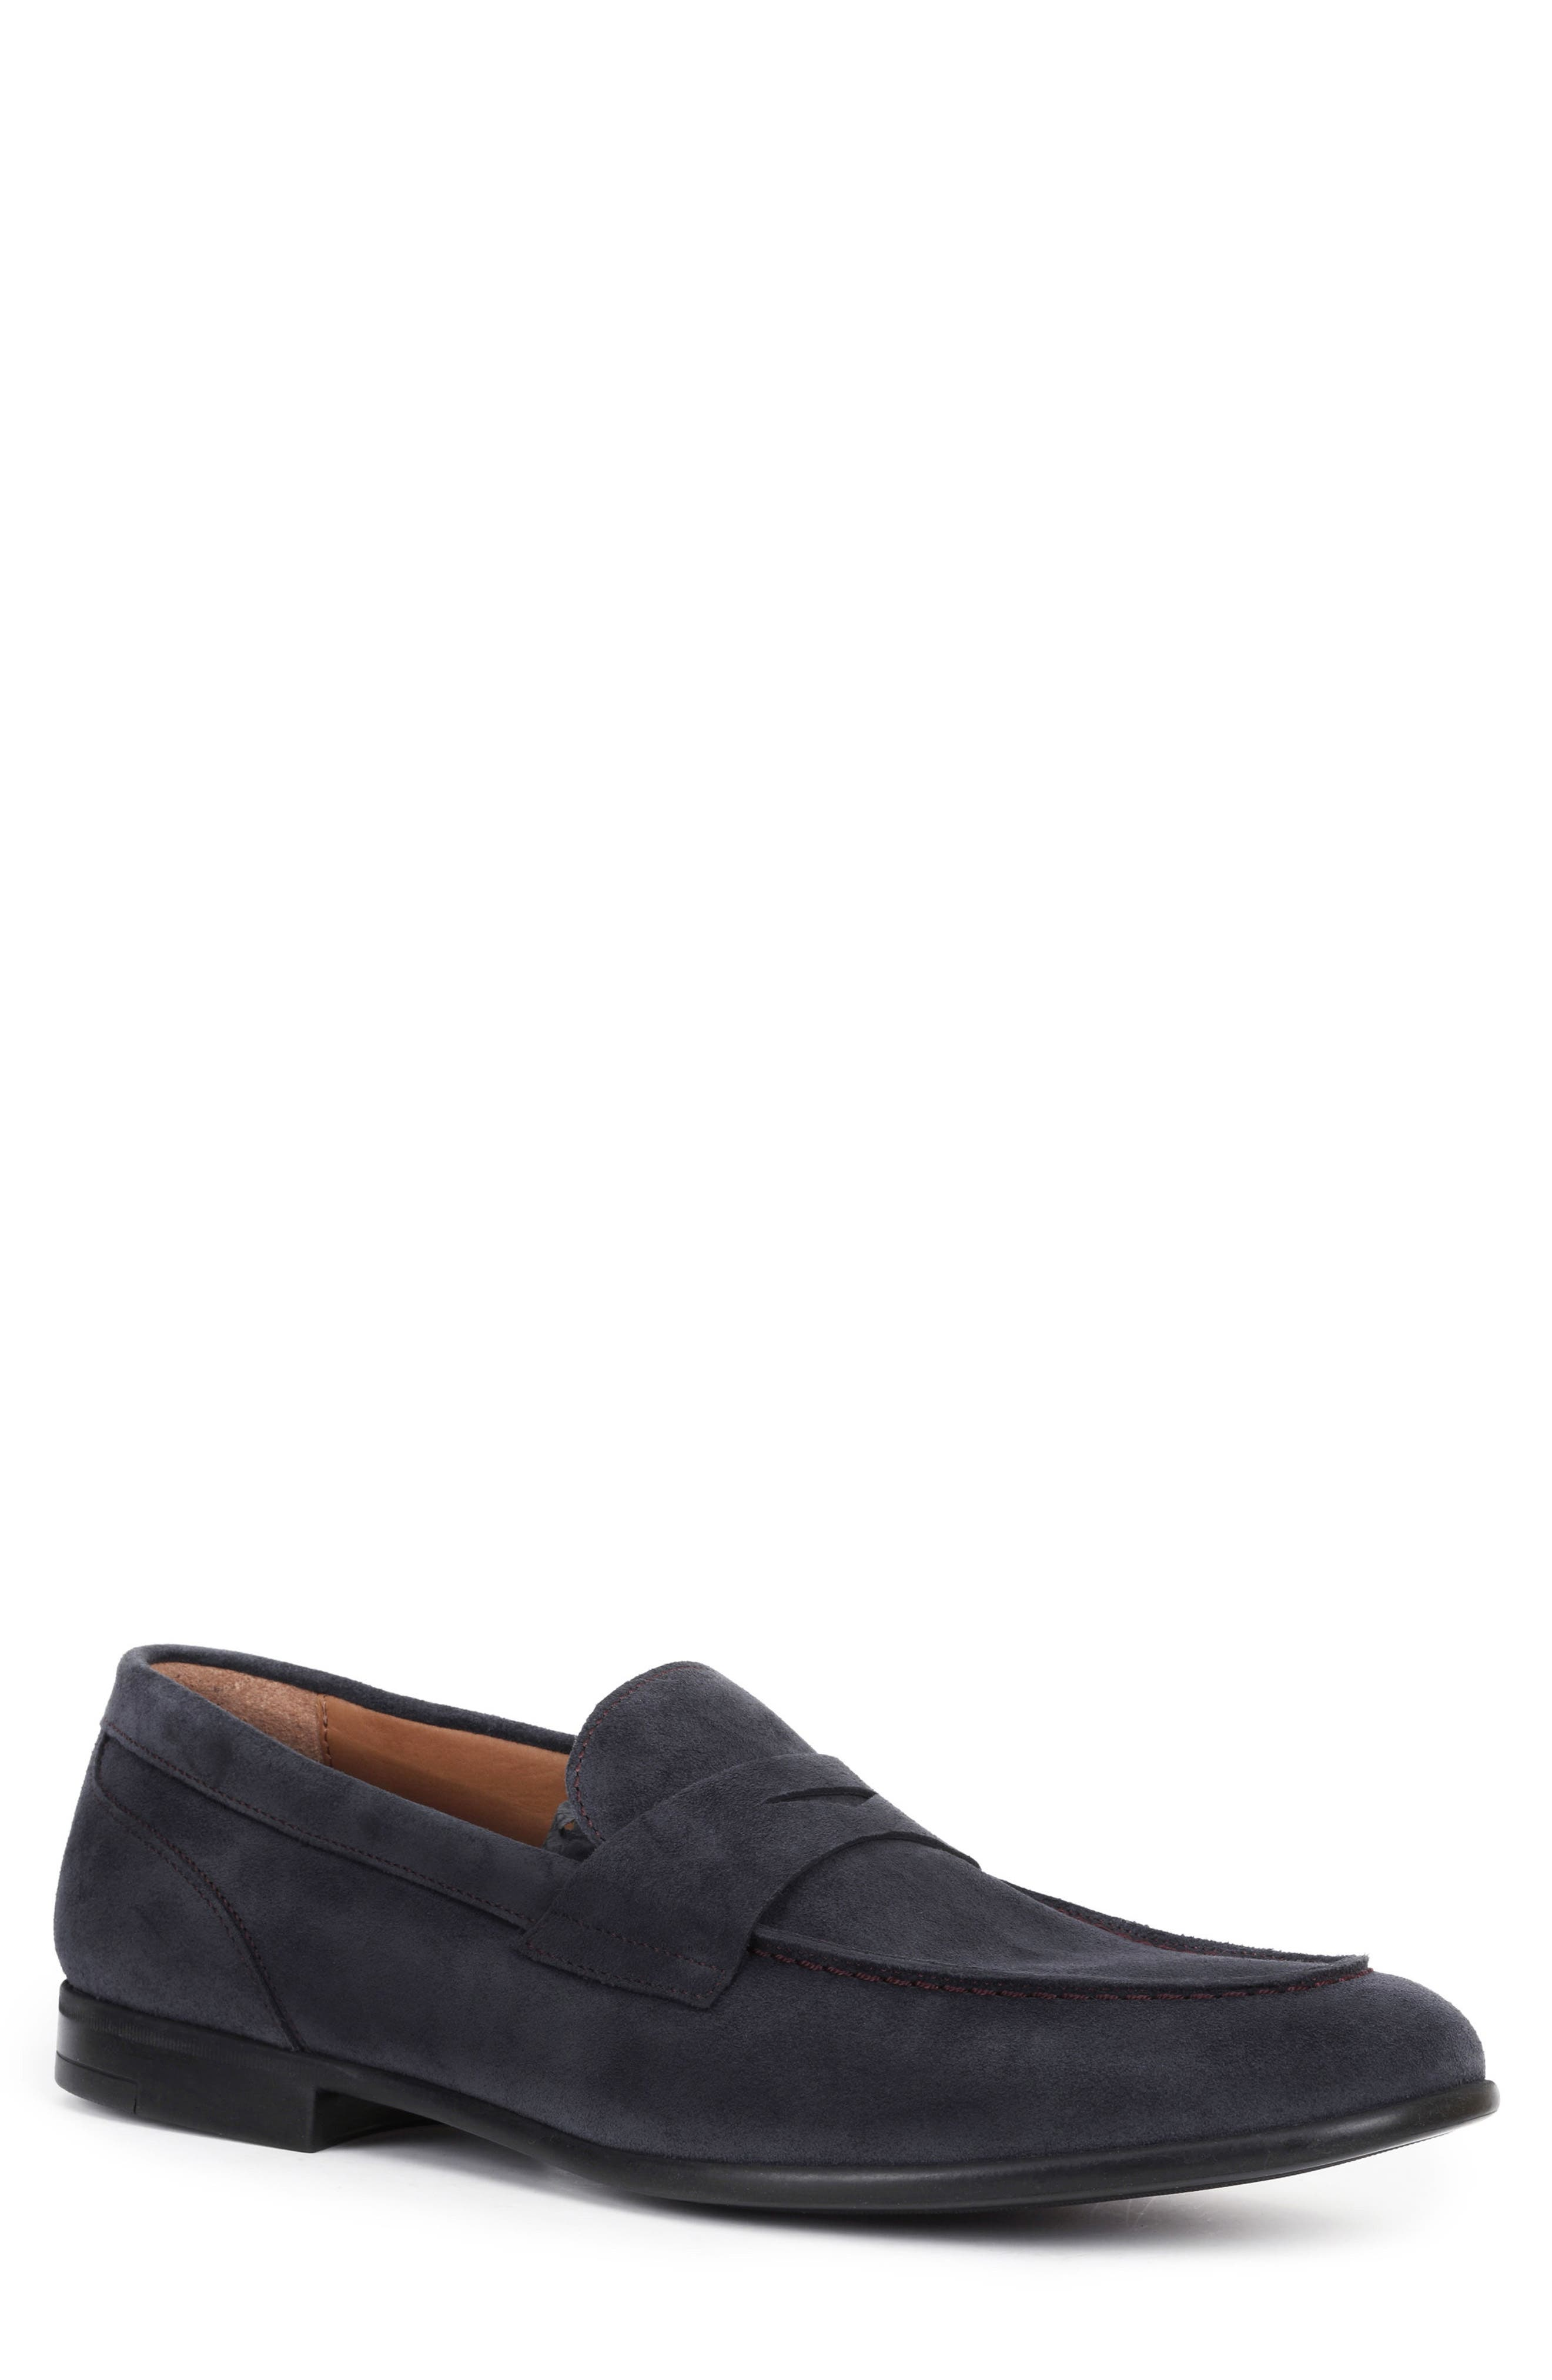 Silas Penny Loafer,                         Main,                         color, Navy